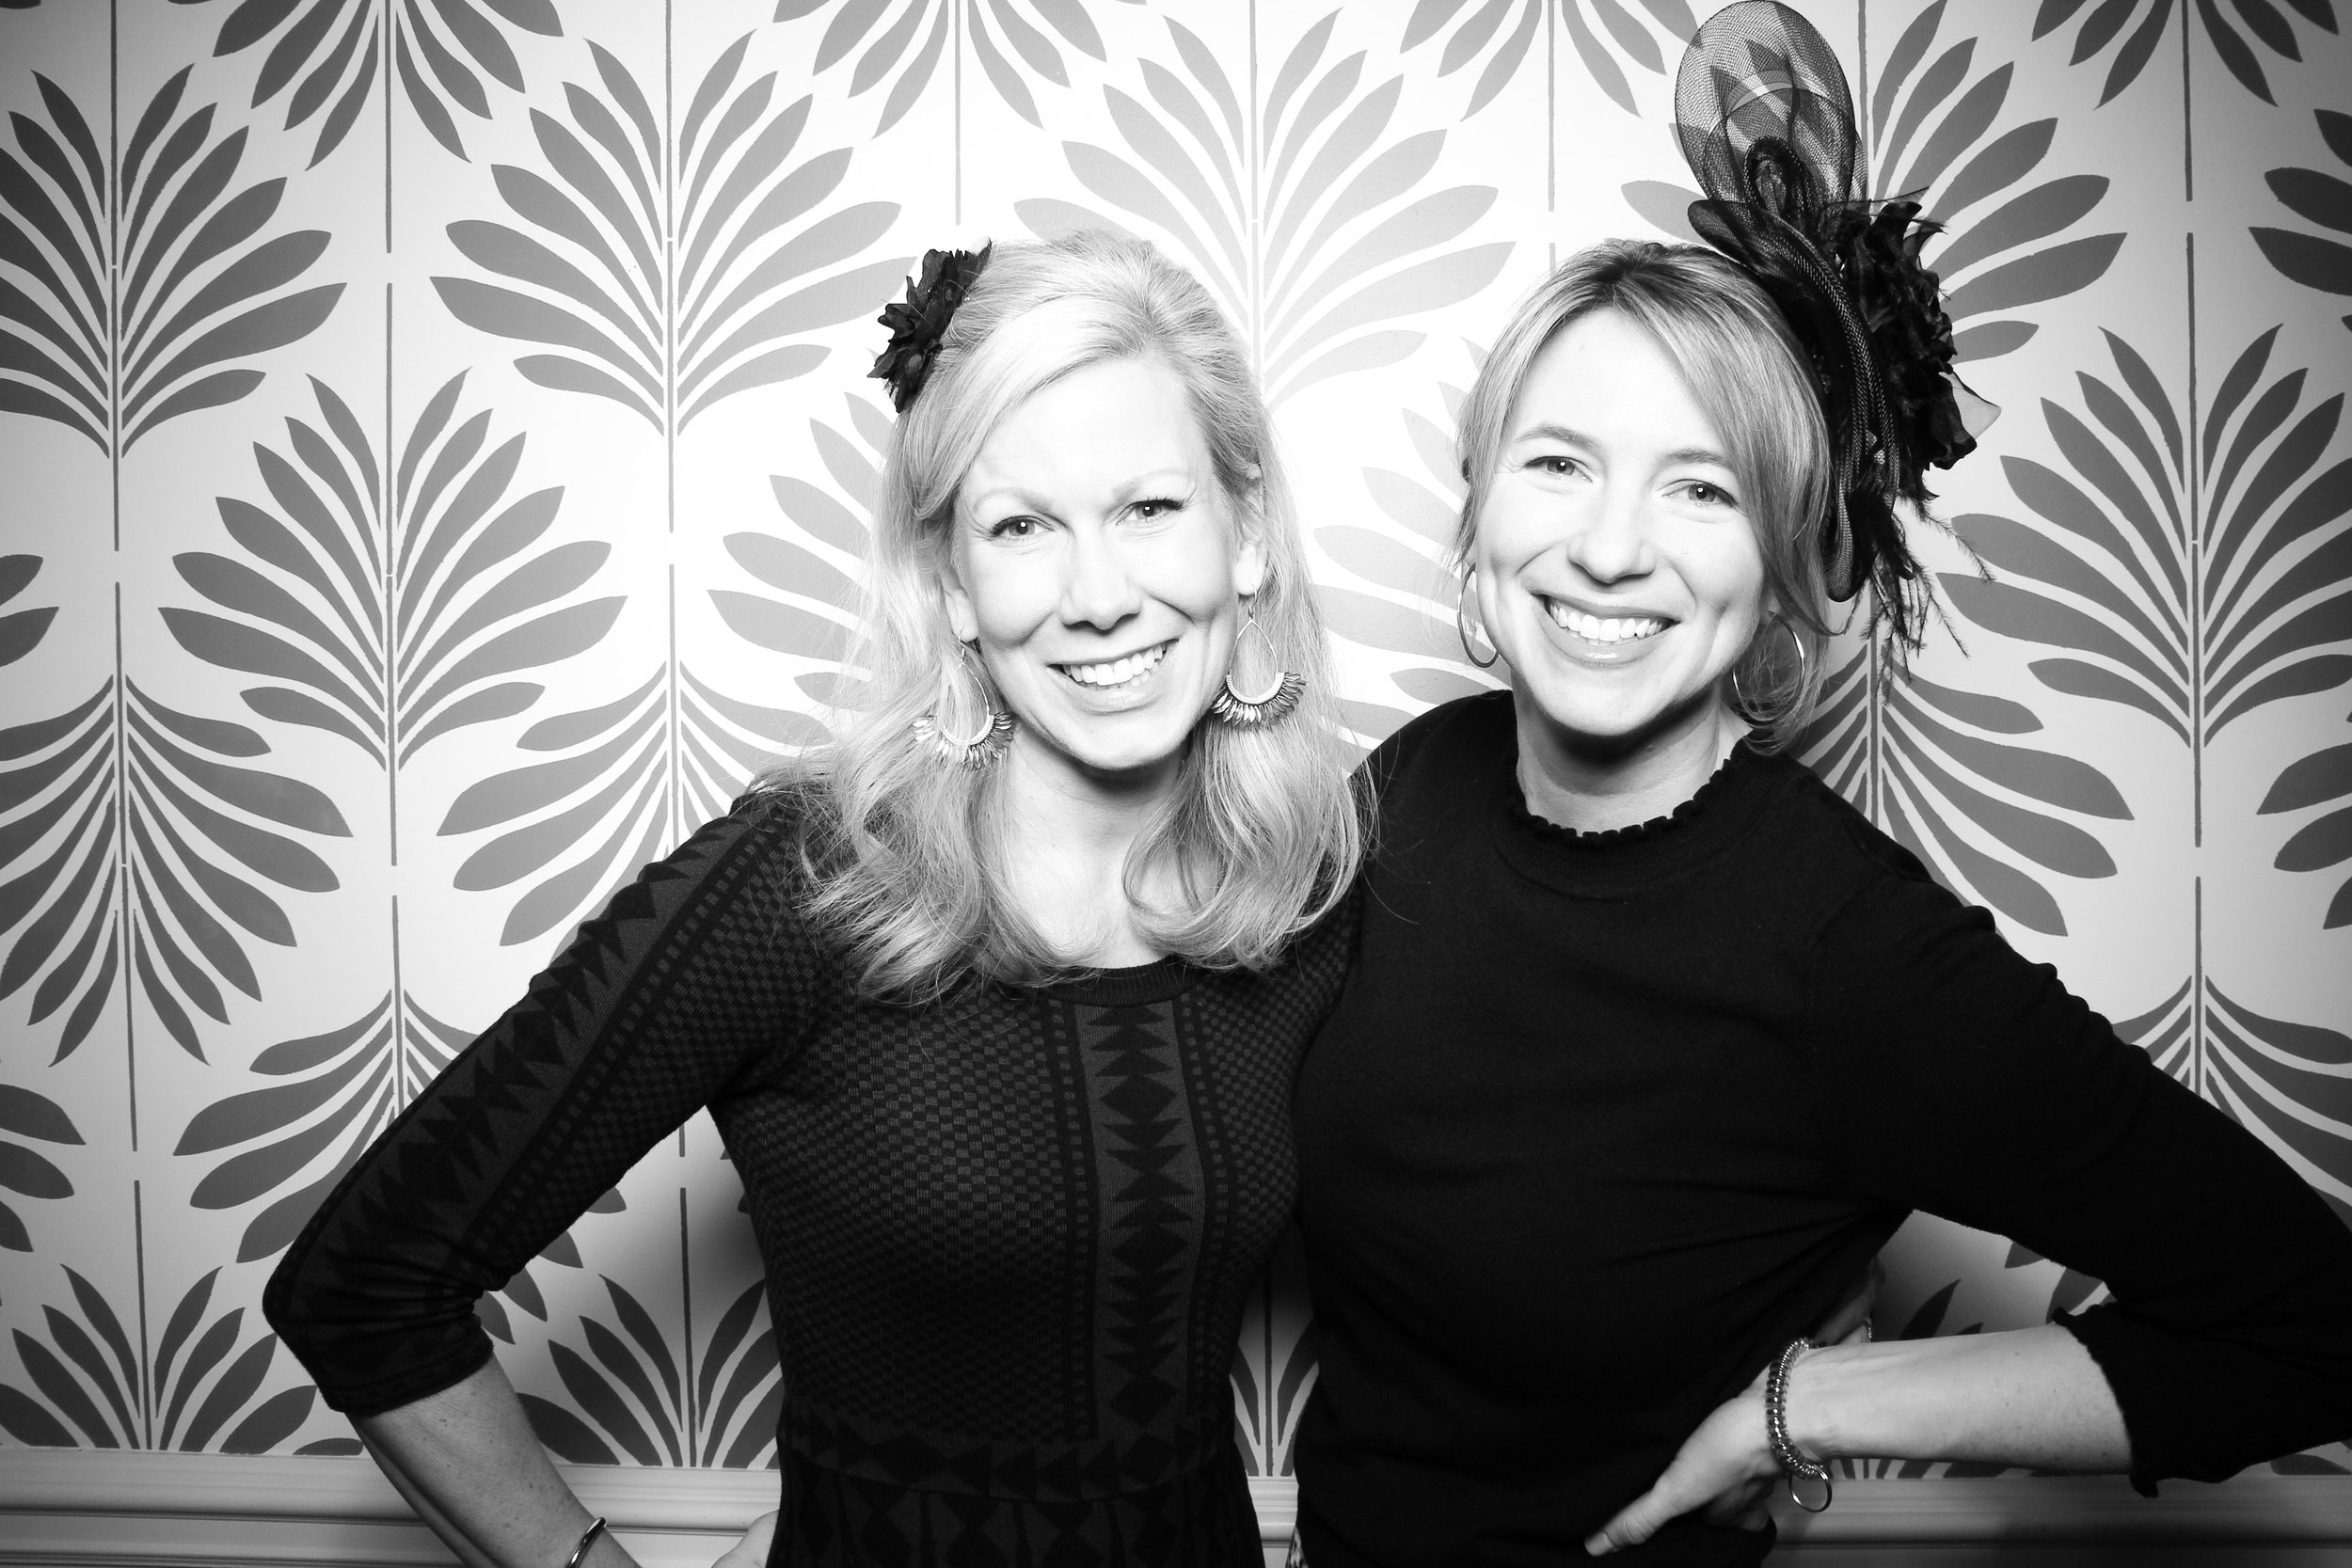 LaGrange_Country_Club_Photo_Booth_Wedding_Reception__09.jpg